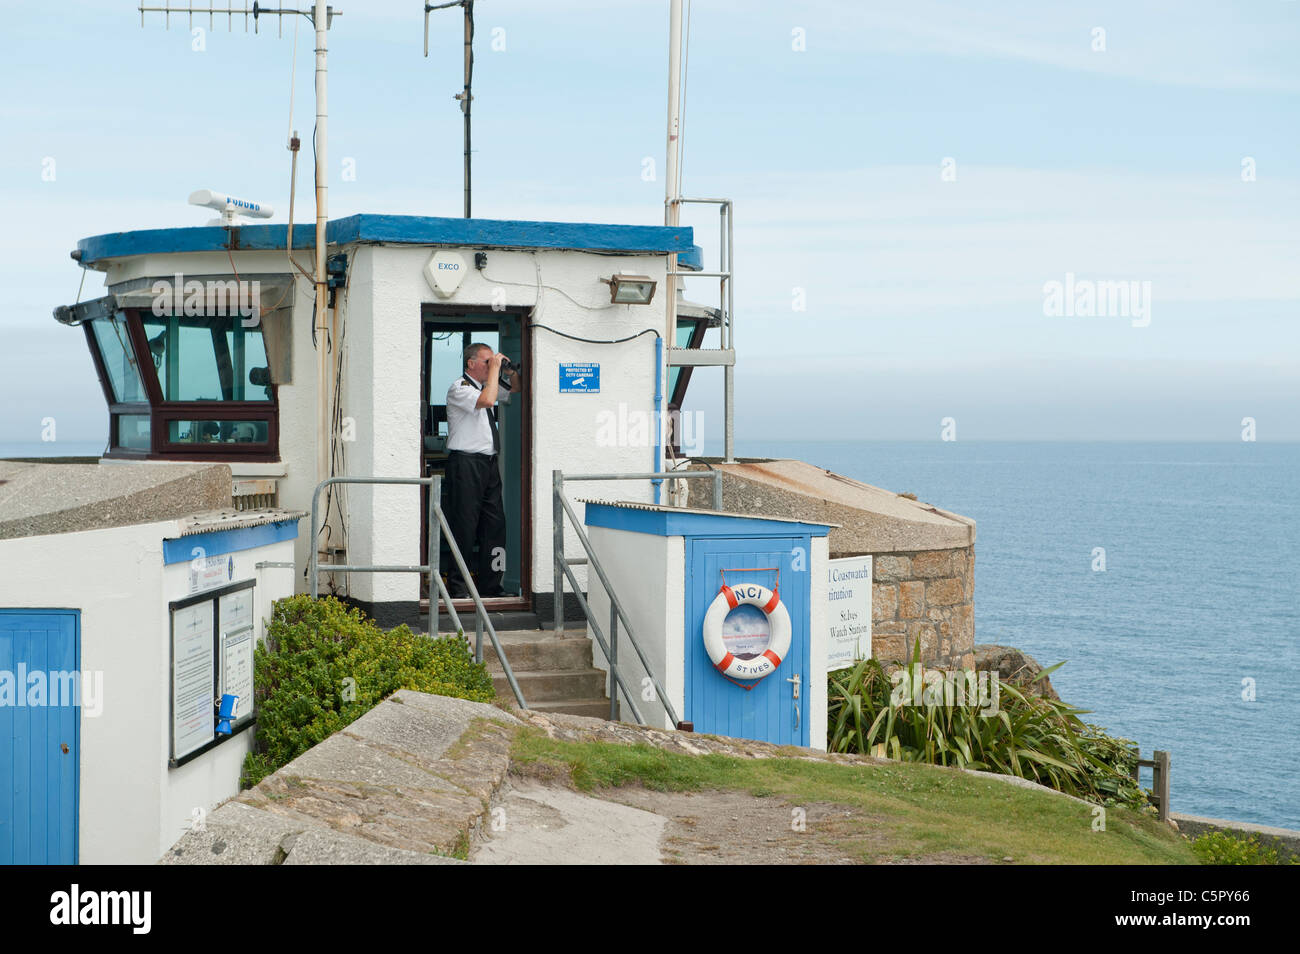 A lifeguard uses binoculars to look out at the sea from a lookout station in St Ives, Cornwall. - Stock Image